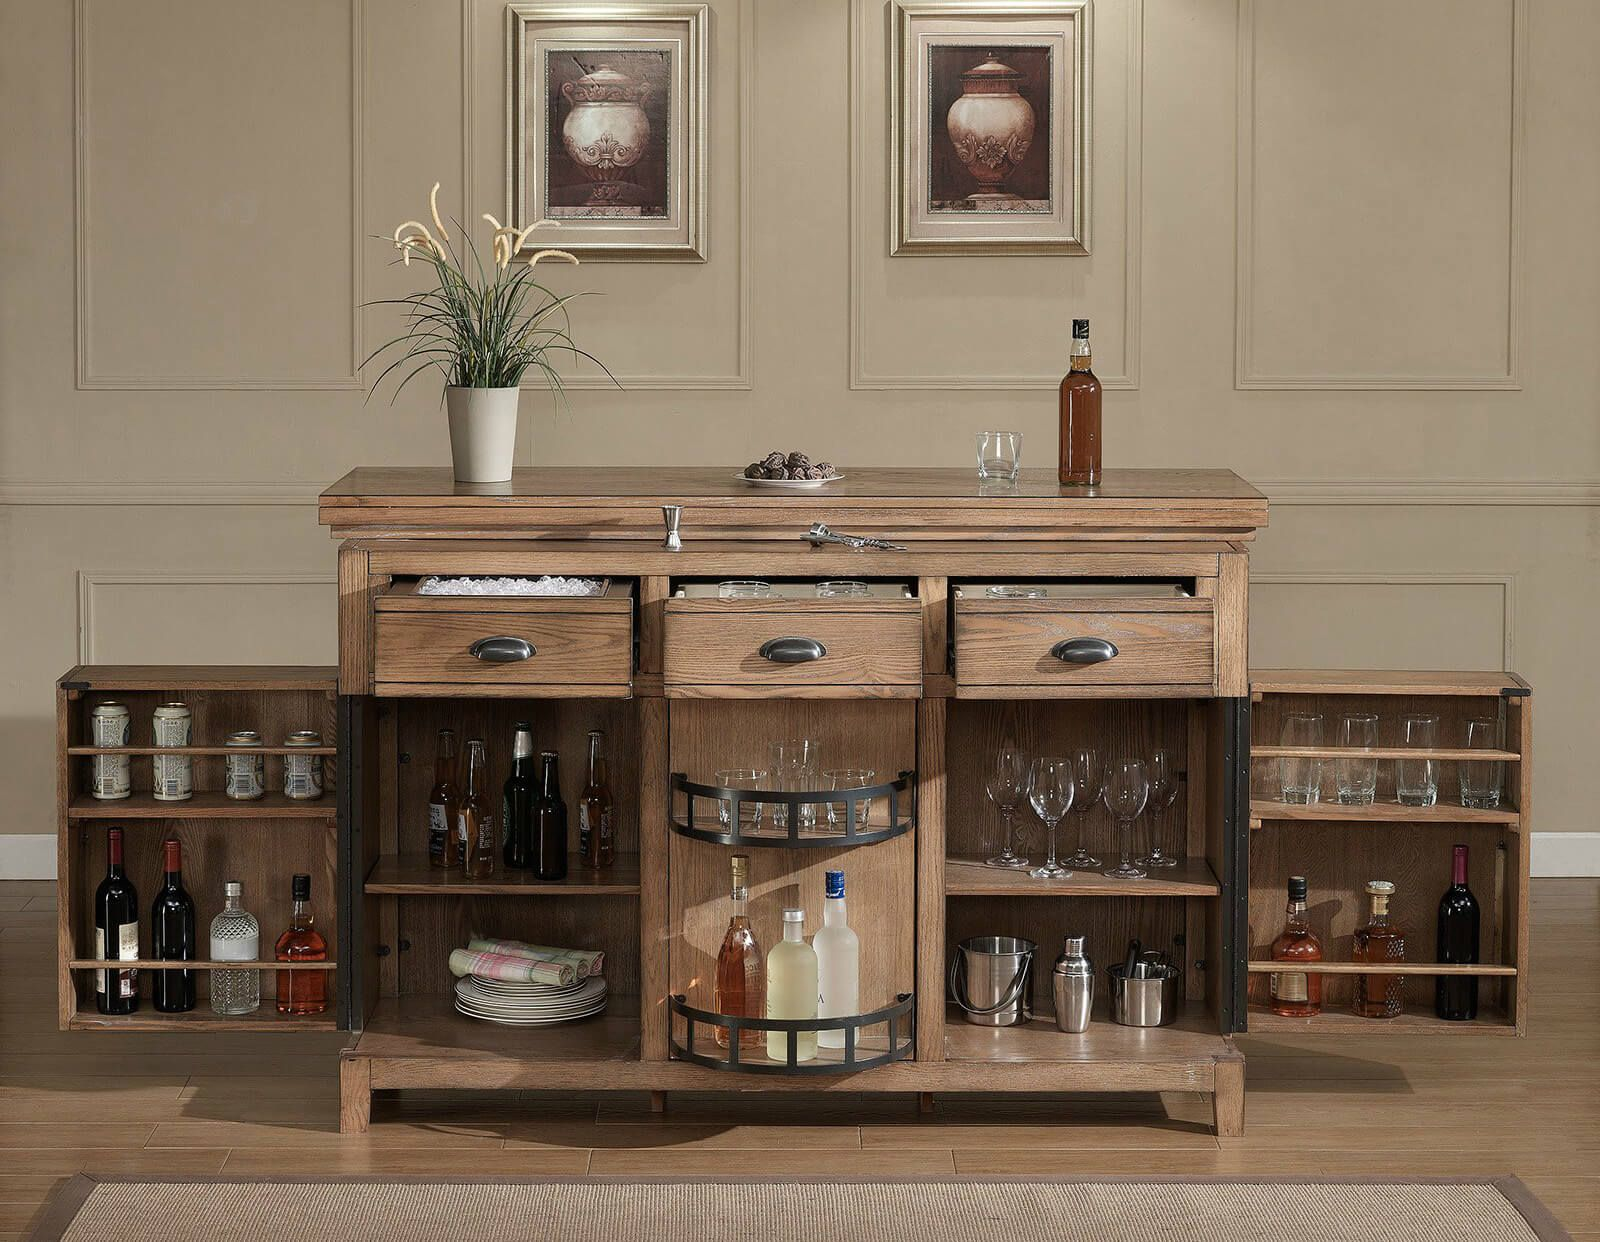 Amazing As You Can See, The Amount Of Storage In This Rustic Home Bar Cabinet Unit